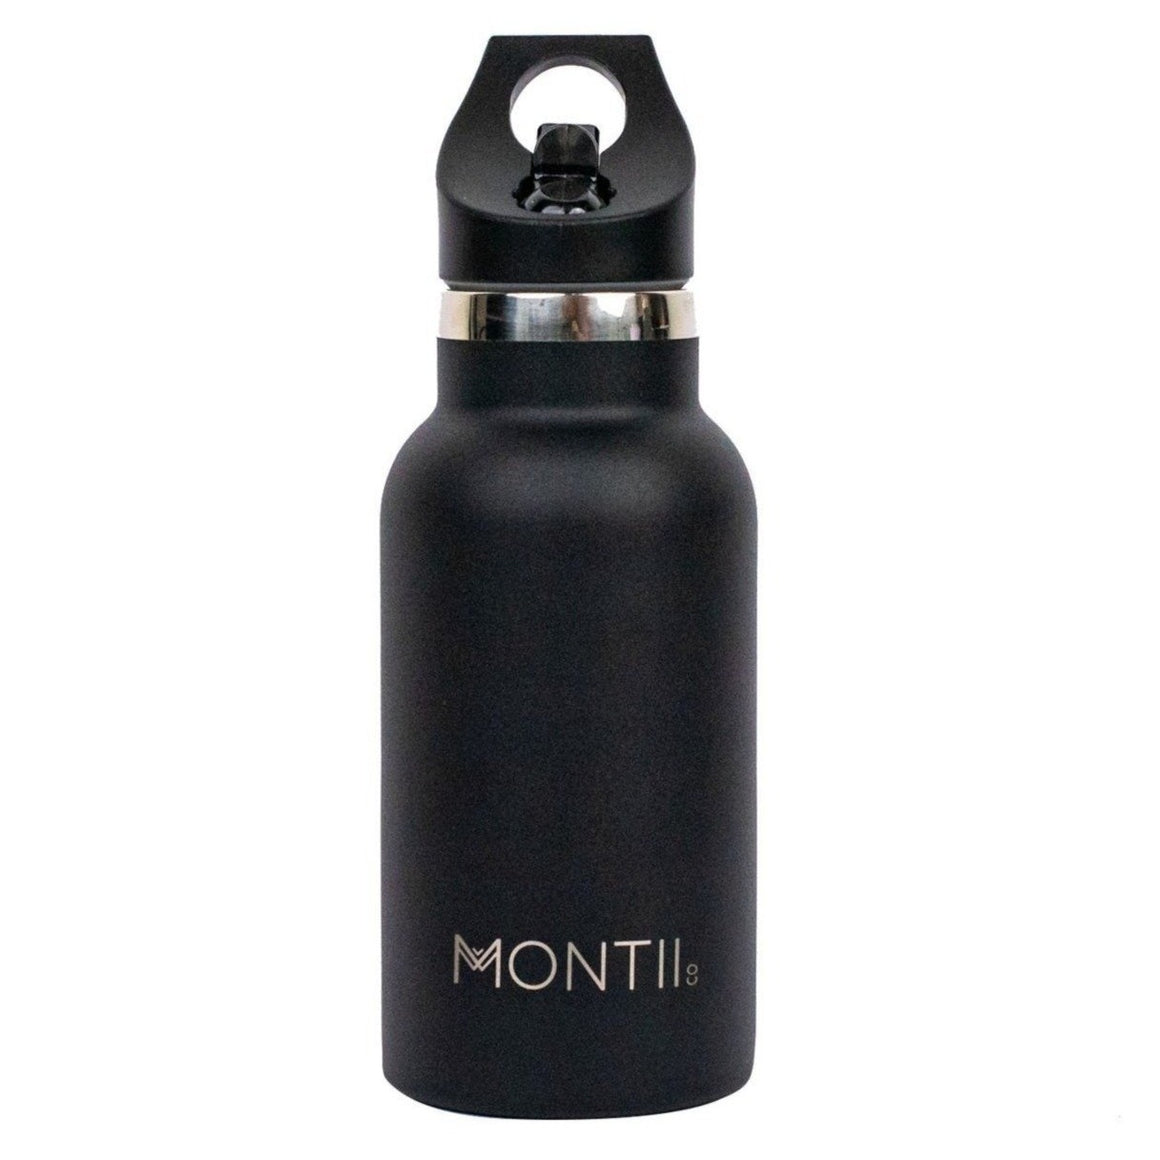 MontiiCo Mini Insulated Drink Bottle (350ml) - Black